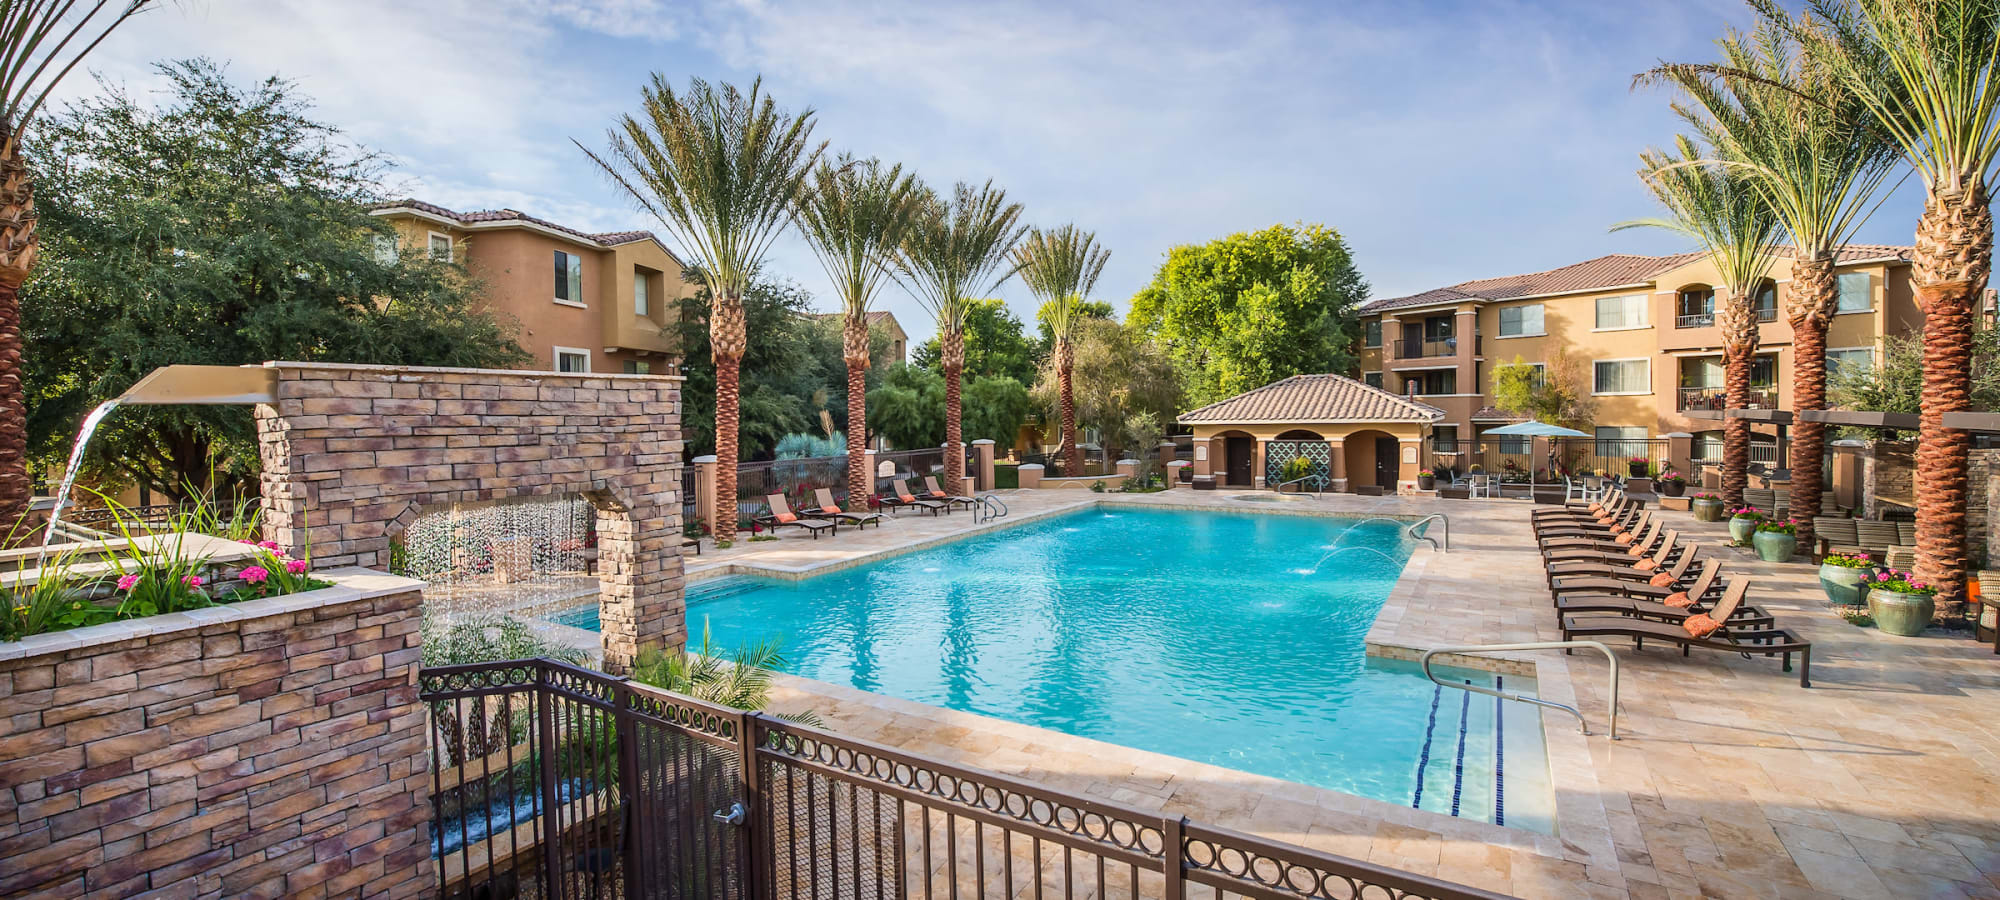 Beautiful swimming pool area at Stone Oaks in Chandler, Arizona